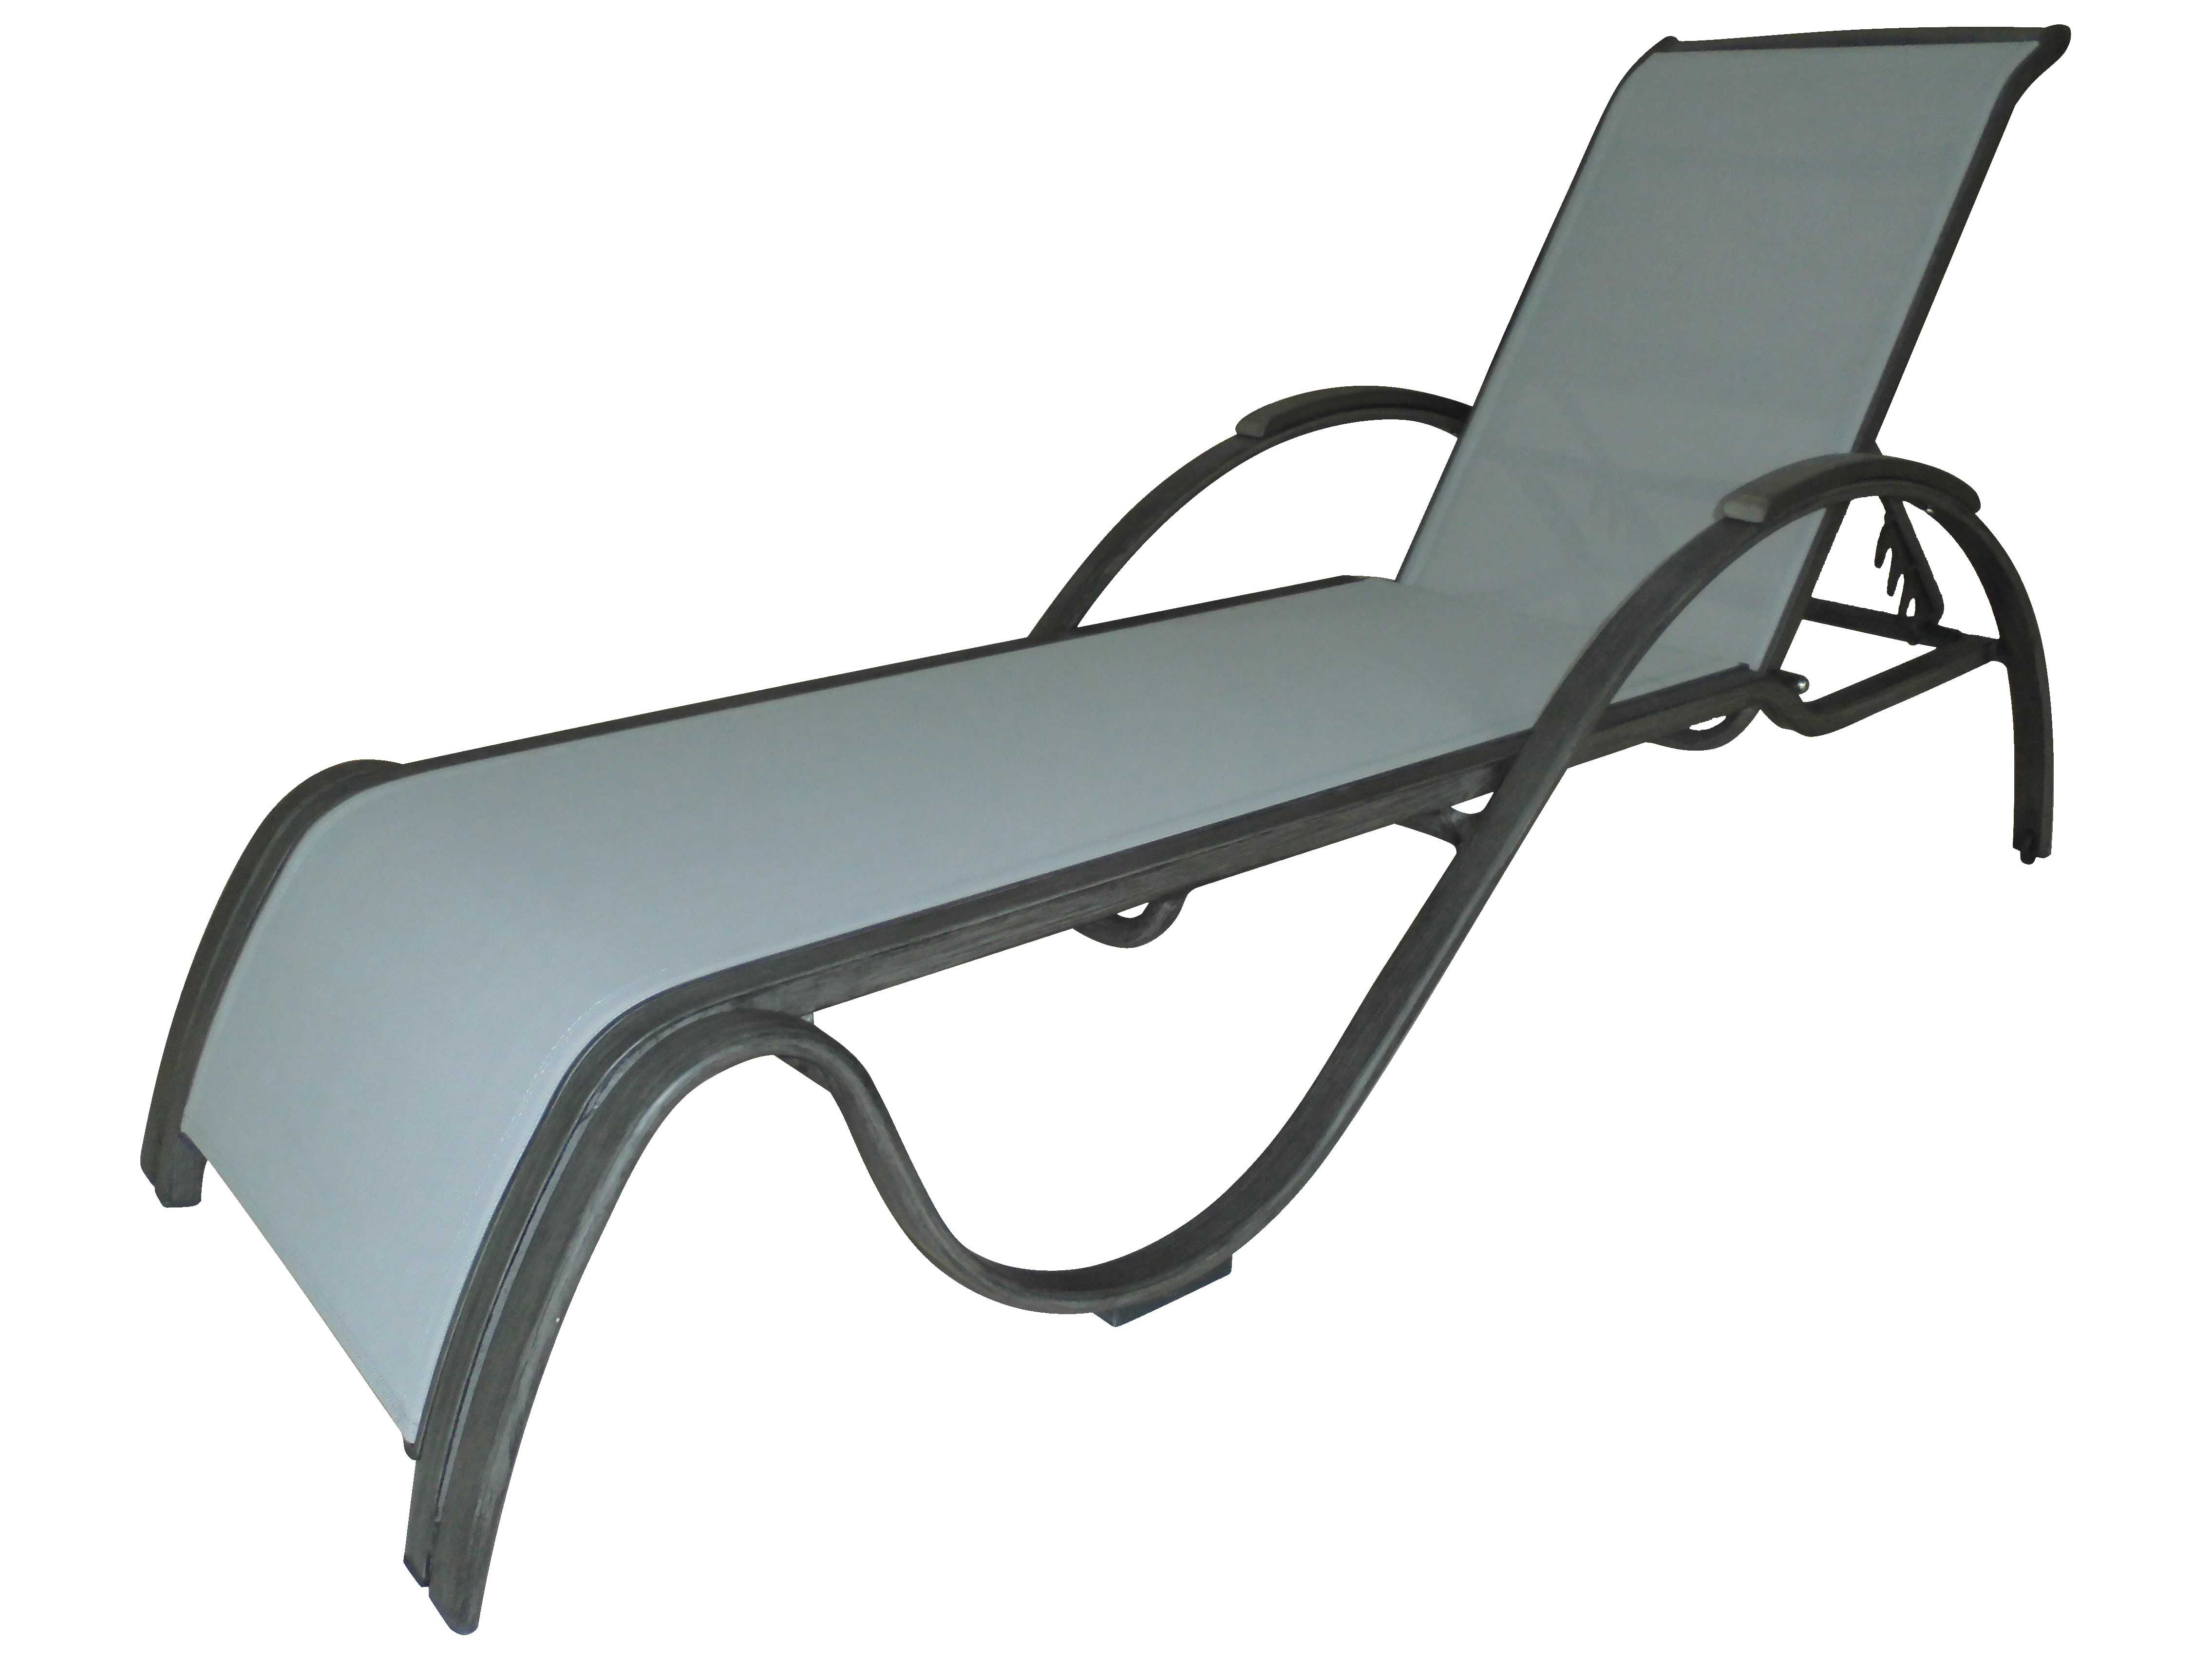 Panama jack newport beach aluminum chaise lounge pjo for Beach chaise lounge